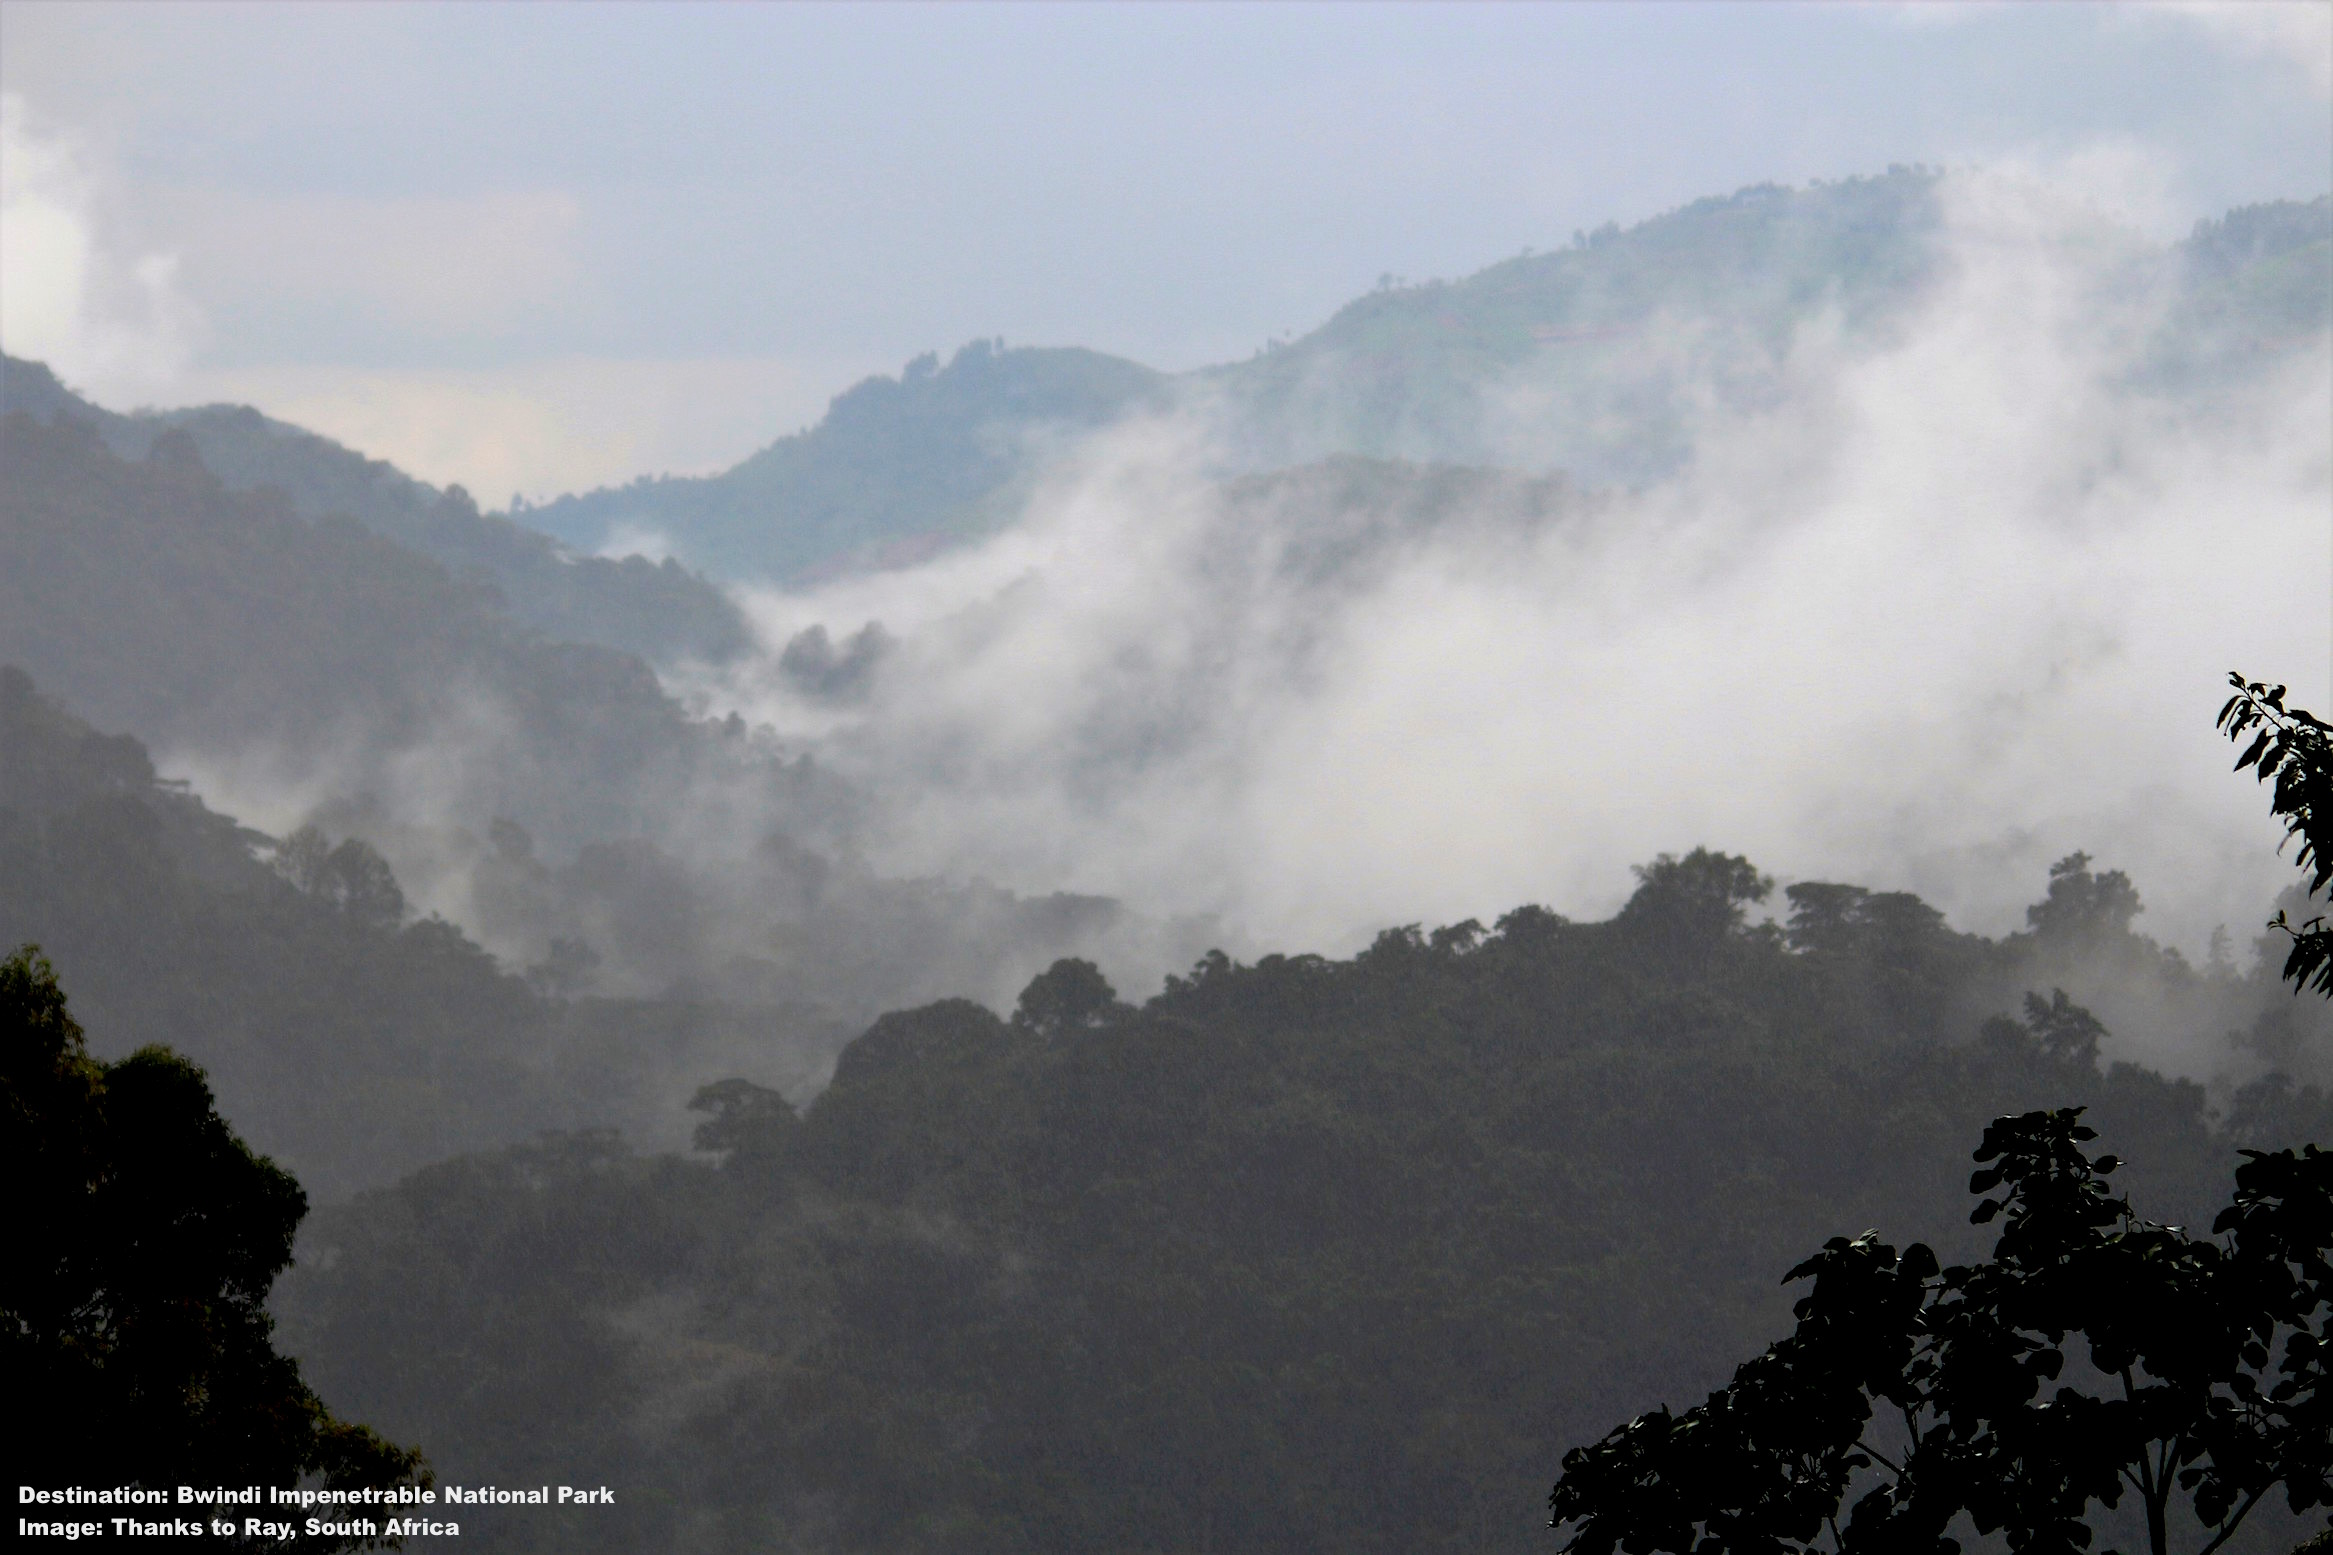 BWINDI IMPENETRABLE NATIONAL PARK SITUATED IN UGANDA'S SOUTHWEST AT THE EDGE OF THE RIFT VALLEY. THE MIST COVERED MOUNTAINSIDES CONCEAL THE RAINFOREST THAT CONCEALS THE MOUNTAIN GORILLAS.